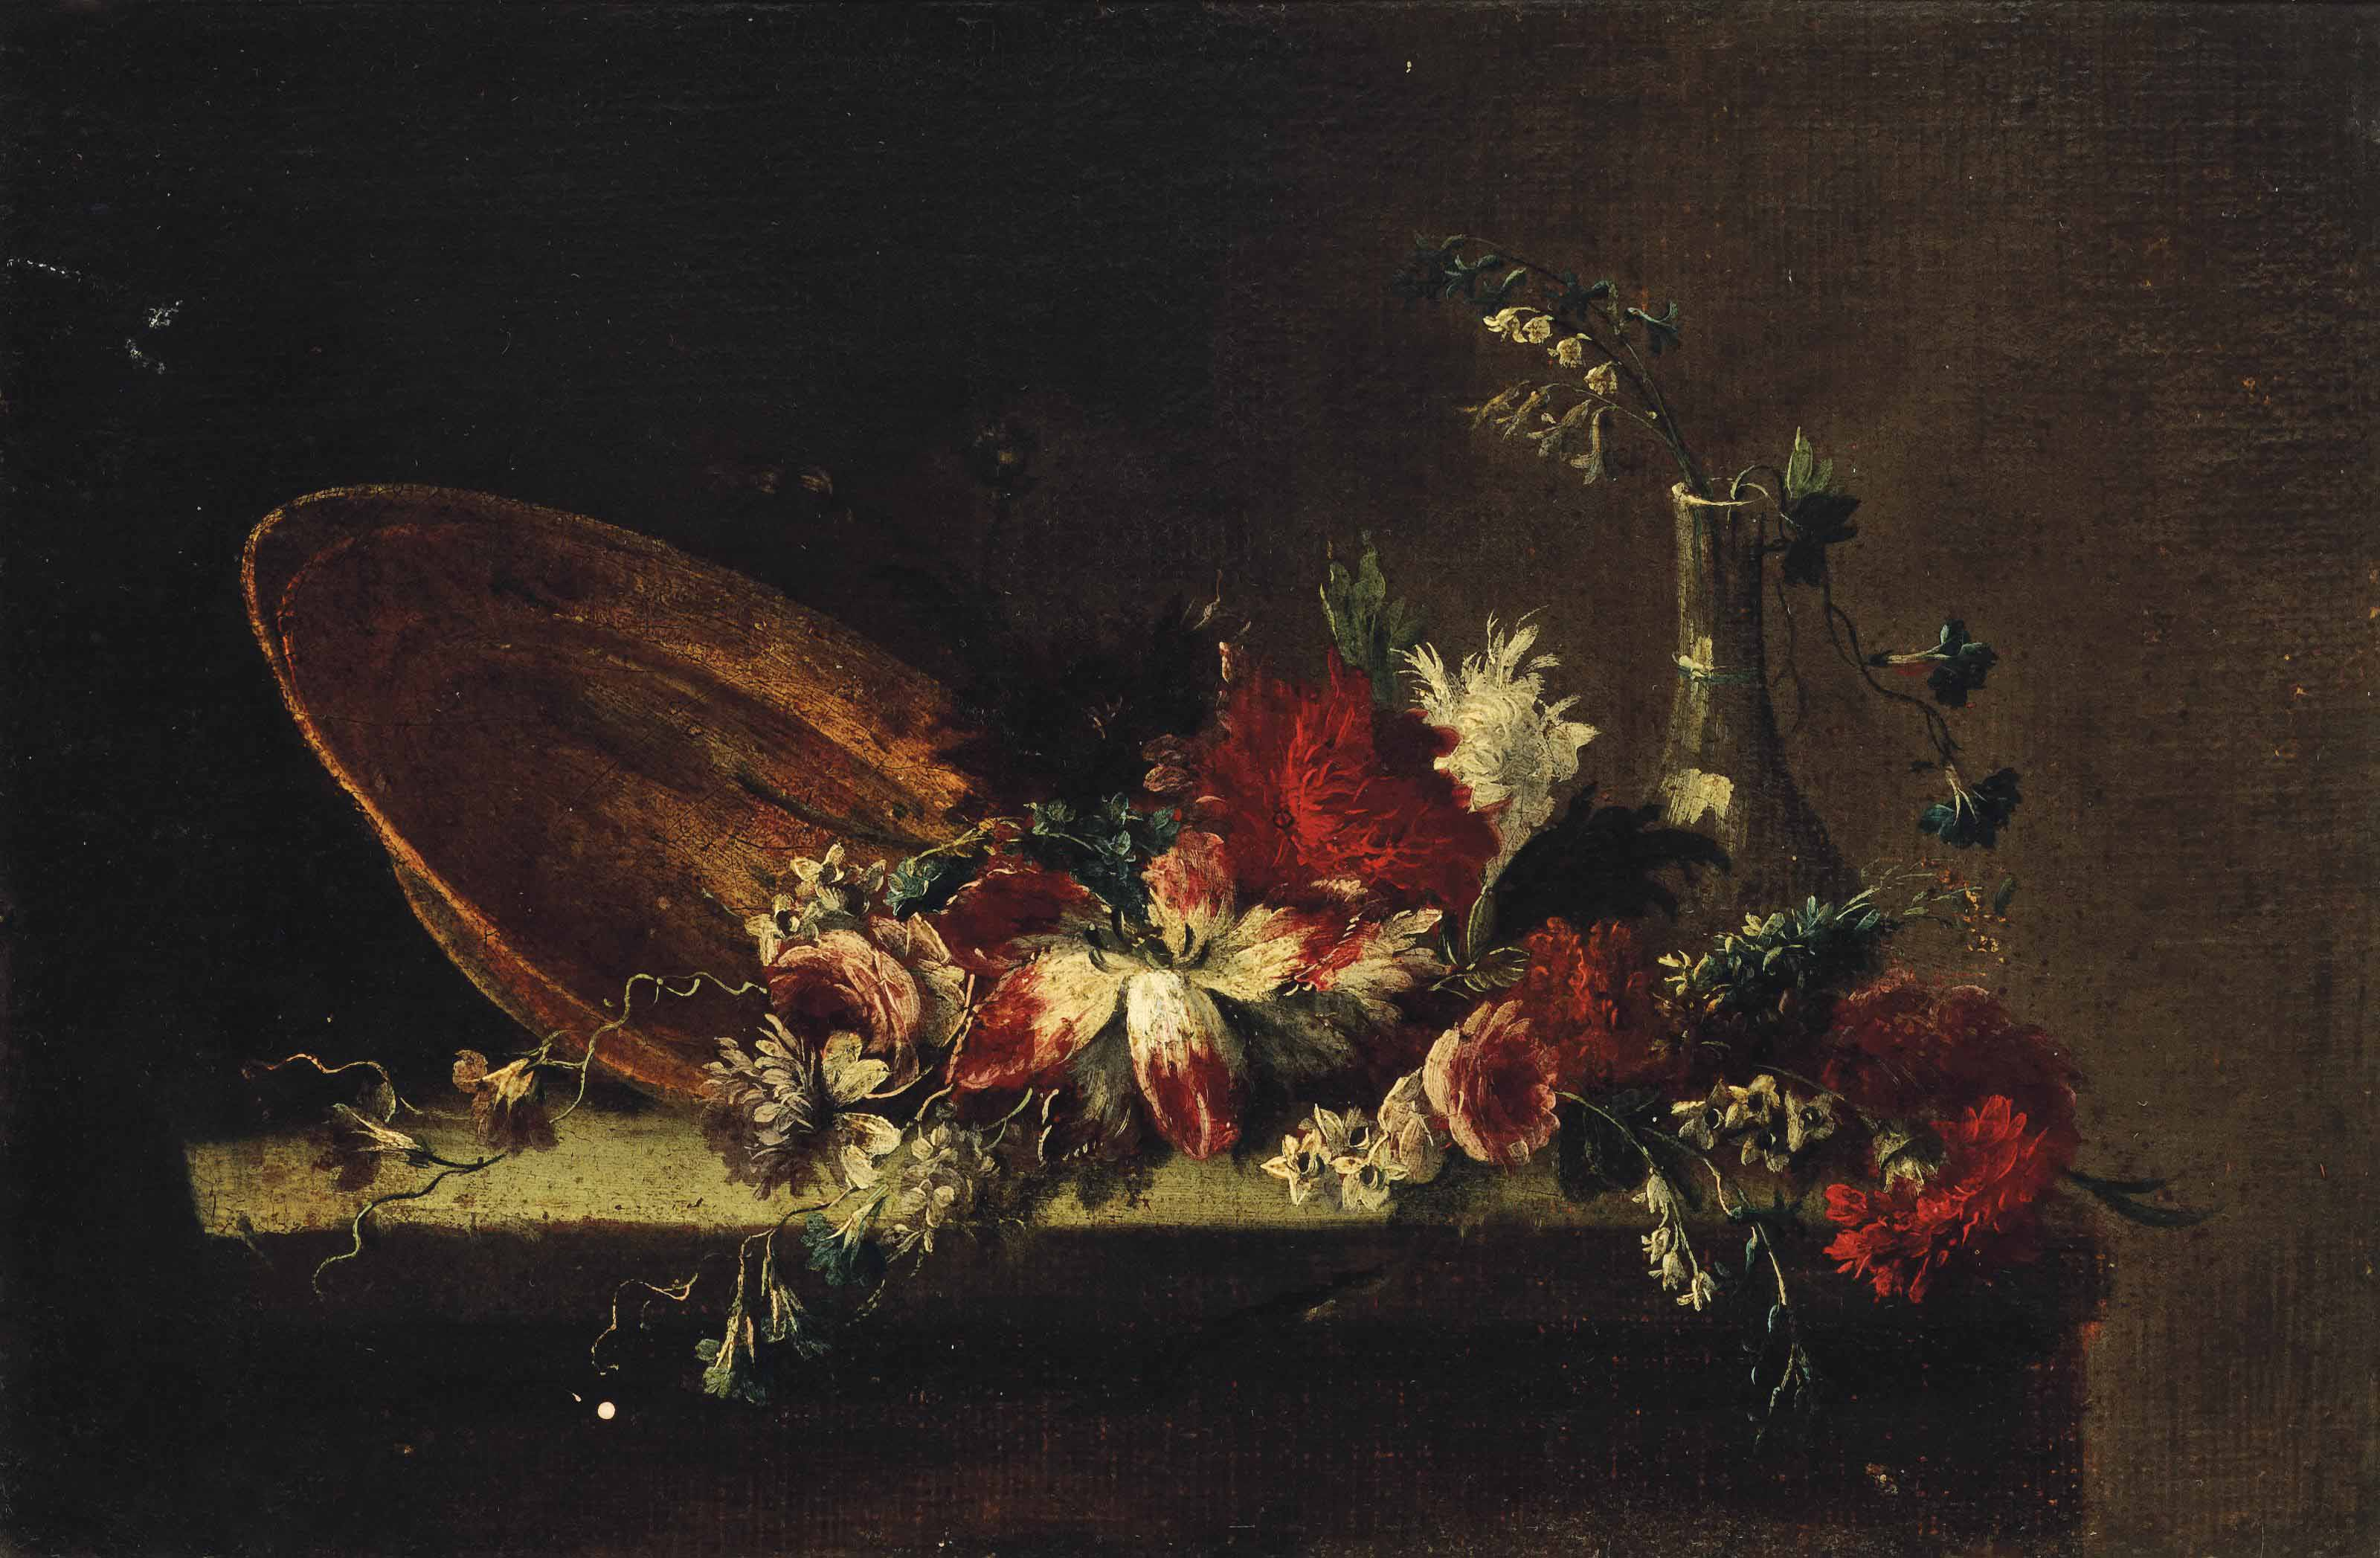 Roses, carnations, narcissi and other flowers with an upturned plate and a glass vase on a stone ledge